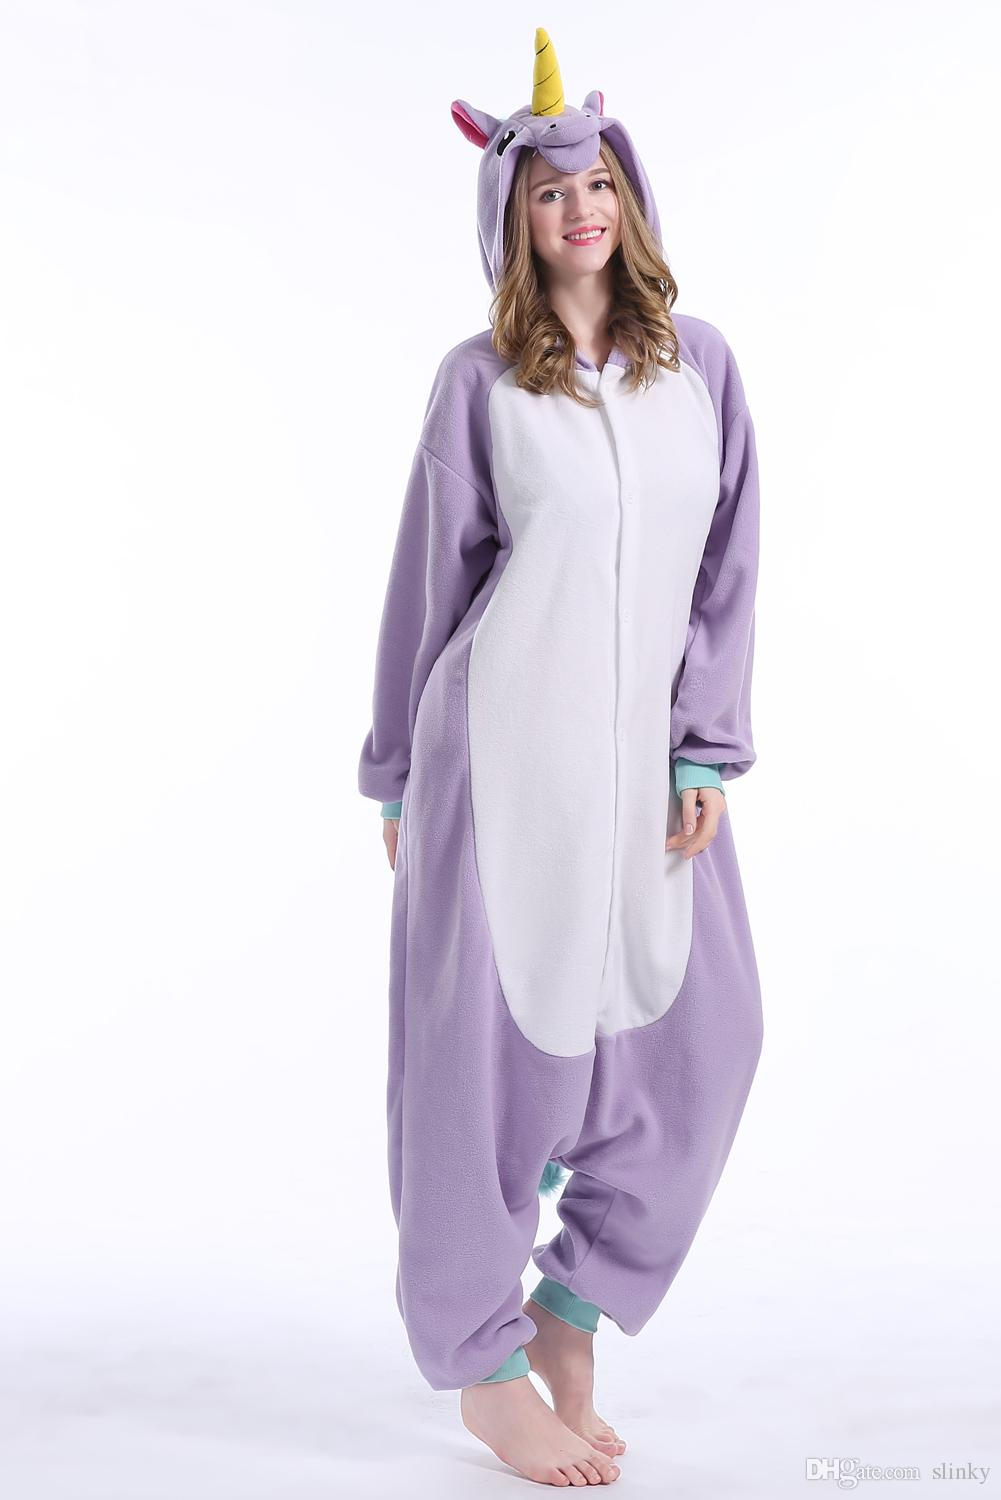 73ba2577c08 Stock Flying horse Unicorn Kigurumi Pajamas Animal Suits Cosplay Halloween  Costume Adult Garment Cartoon Jumpsuits Unisex Animal Sleepwear